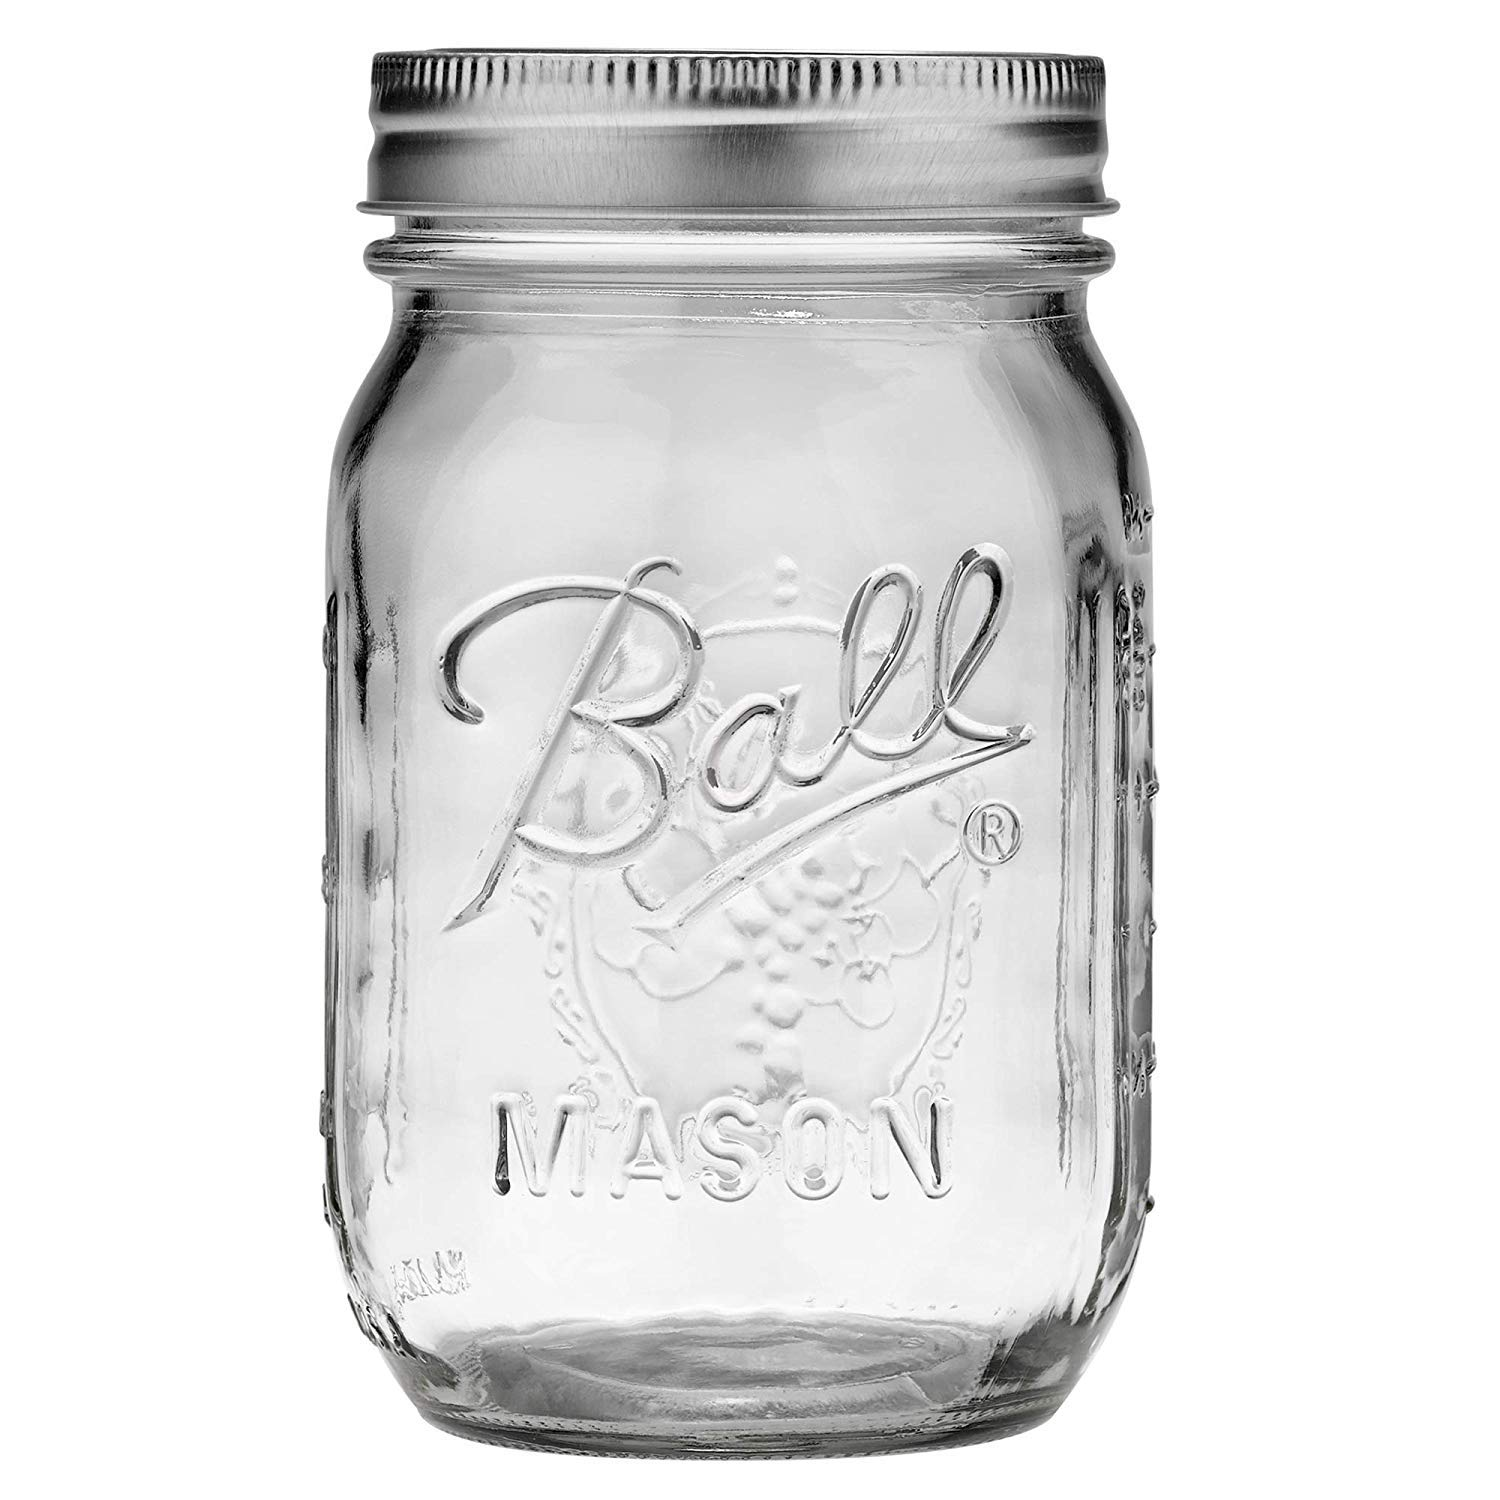 Jarden Ball Regular Mouth 16-Ounces Mason Jar with Lid and Band (24 Jars)